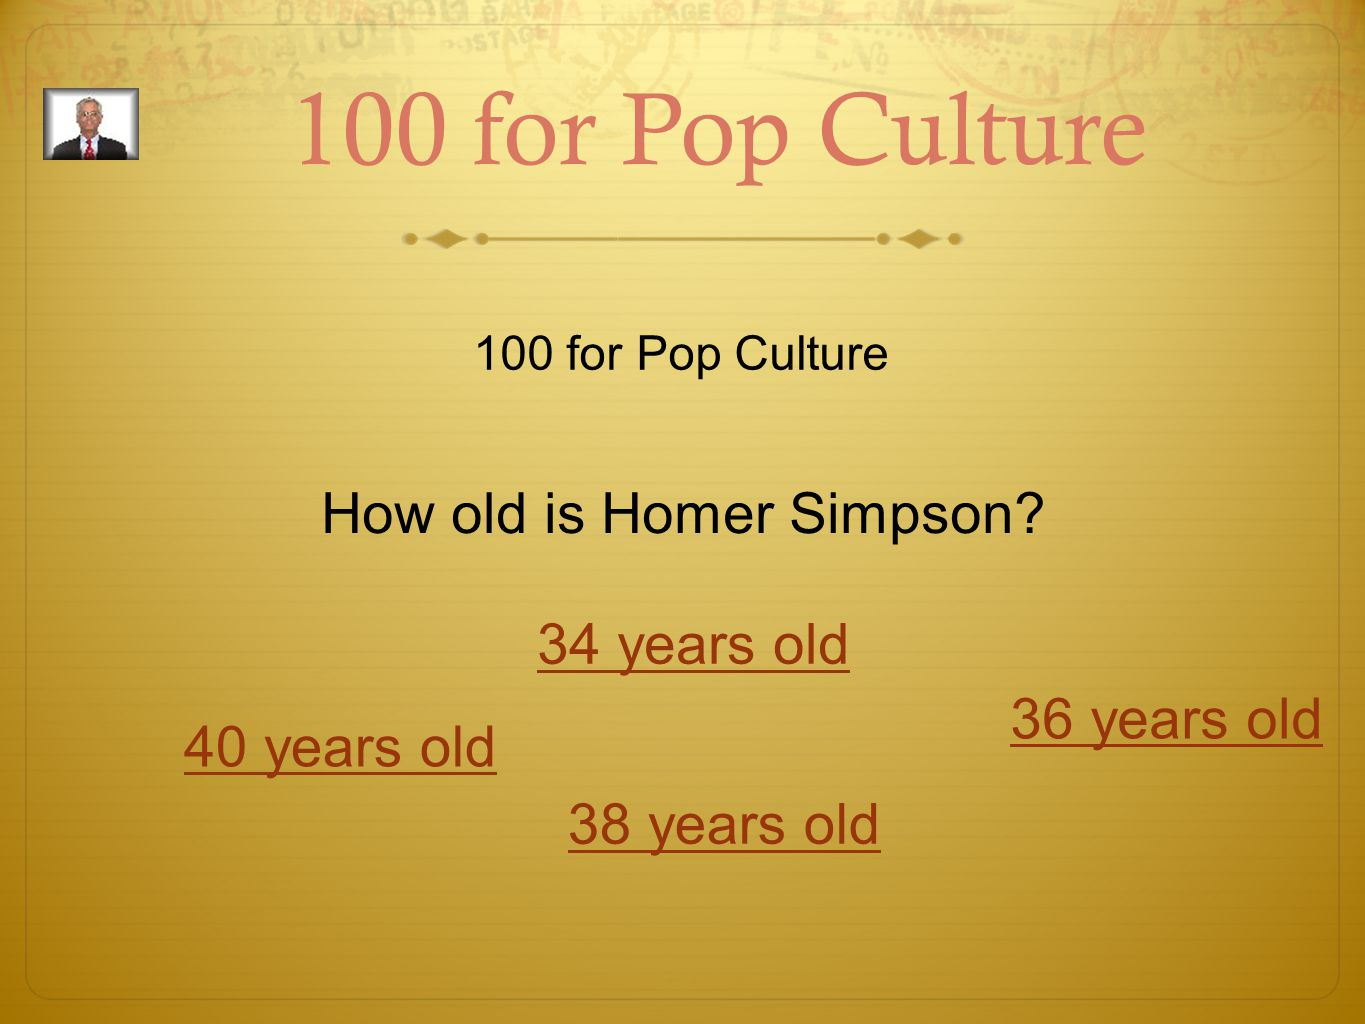 100 for Pop Culture How old is Homer Simpson? 40 years old 34 years old 36 years old 38 years old